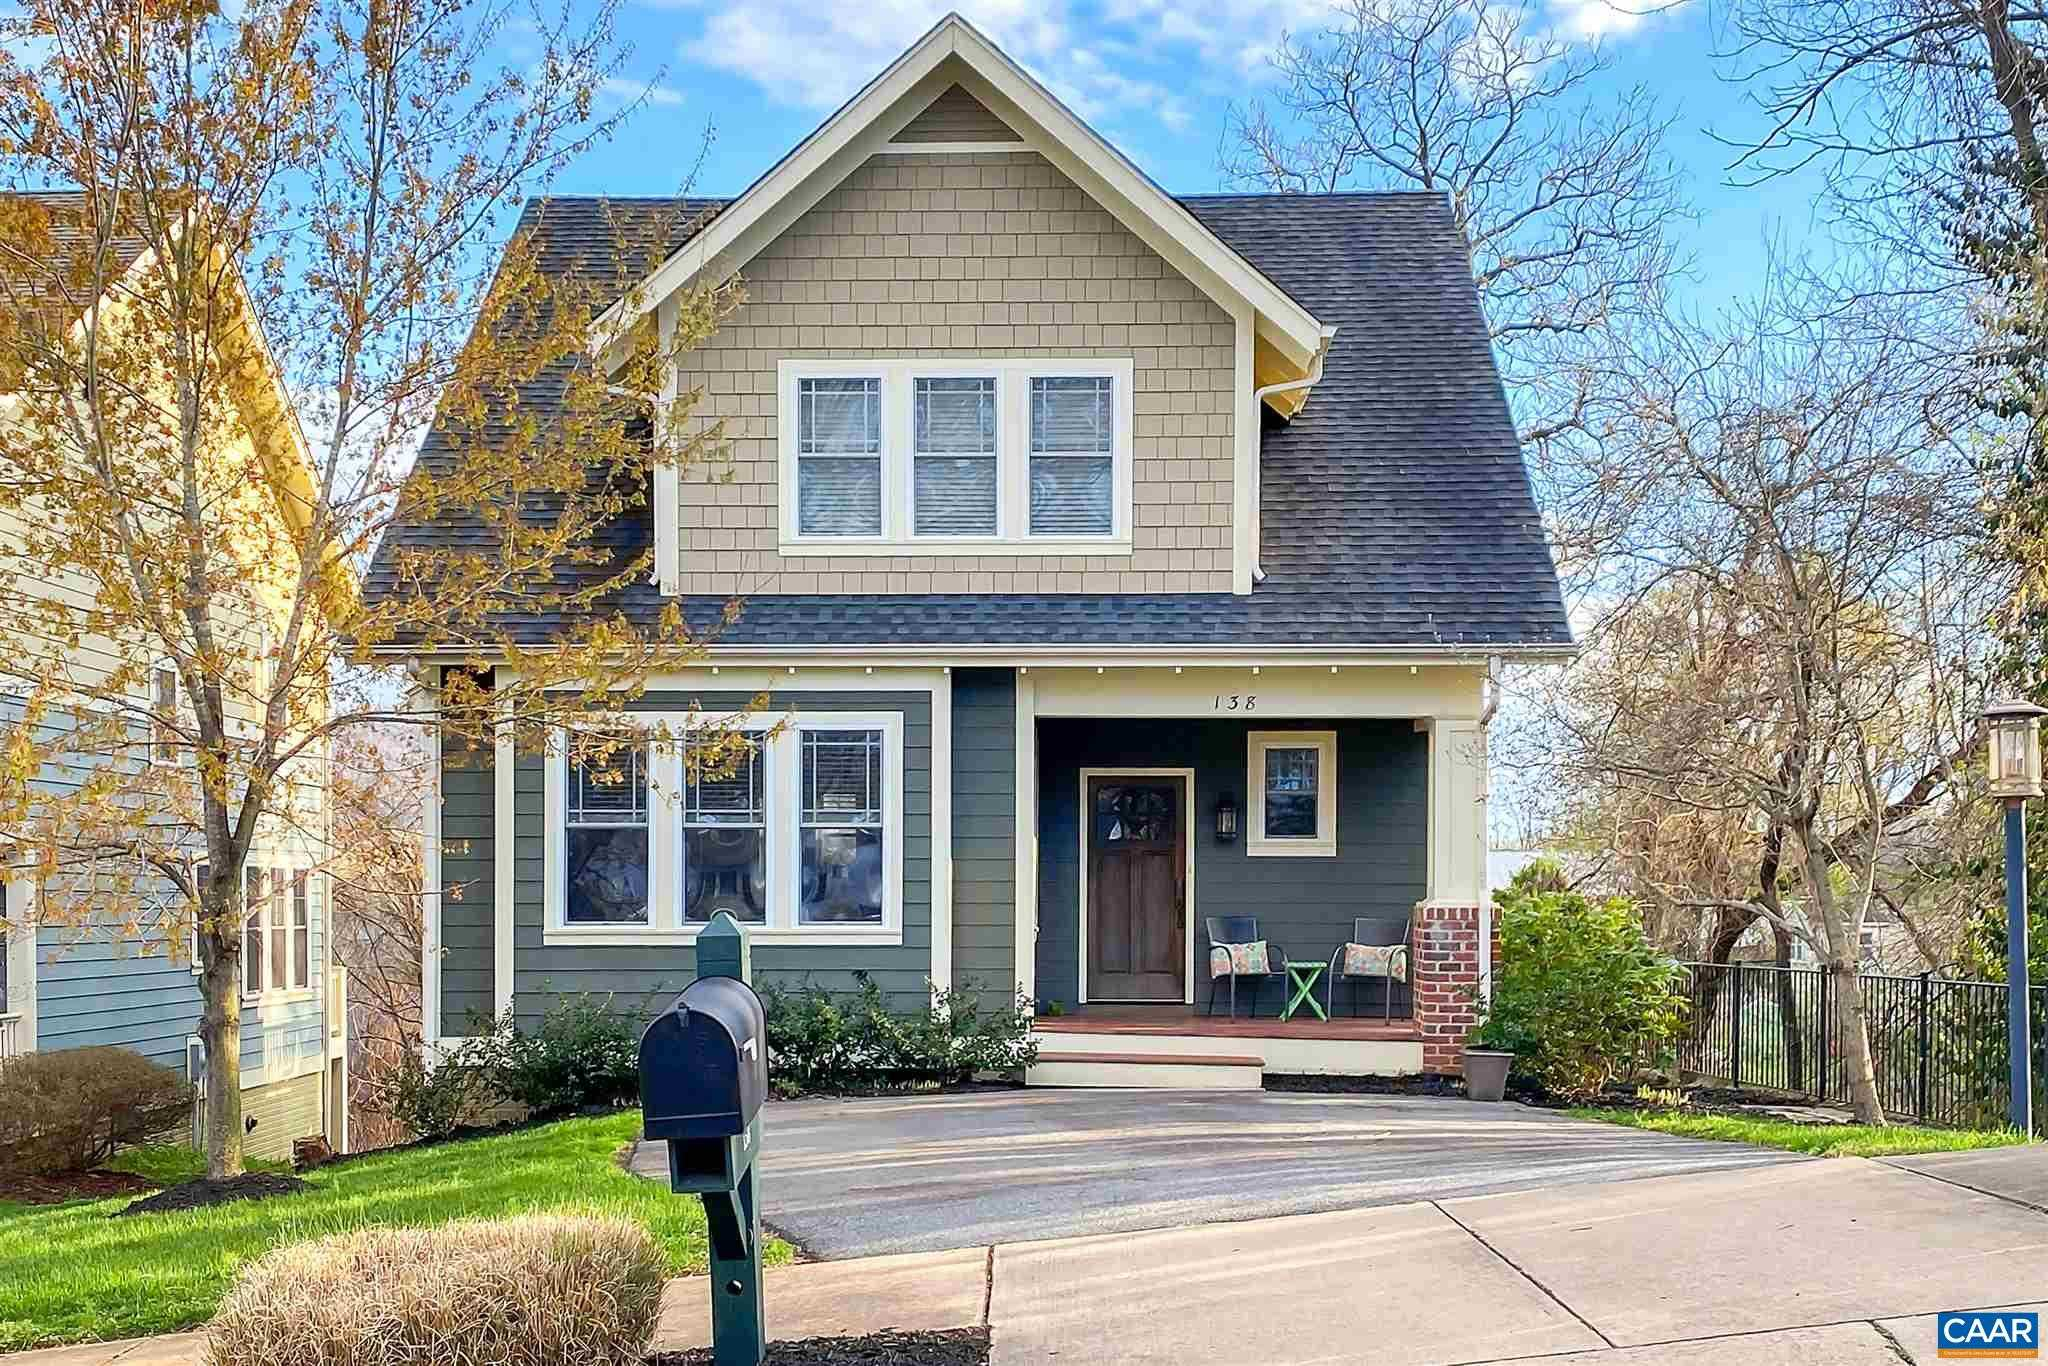 $525,000 - 4Br/4Ba -  for Sale in Carters View, Charlottesville